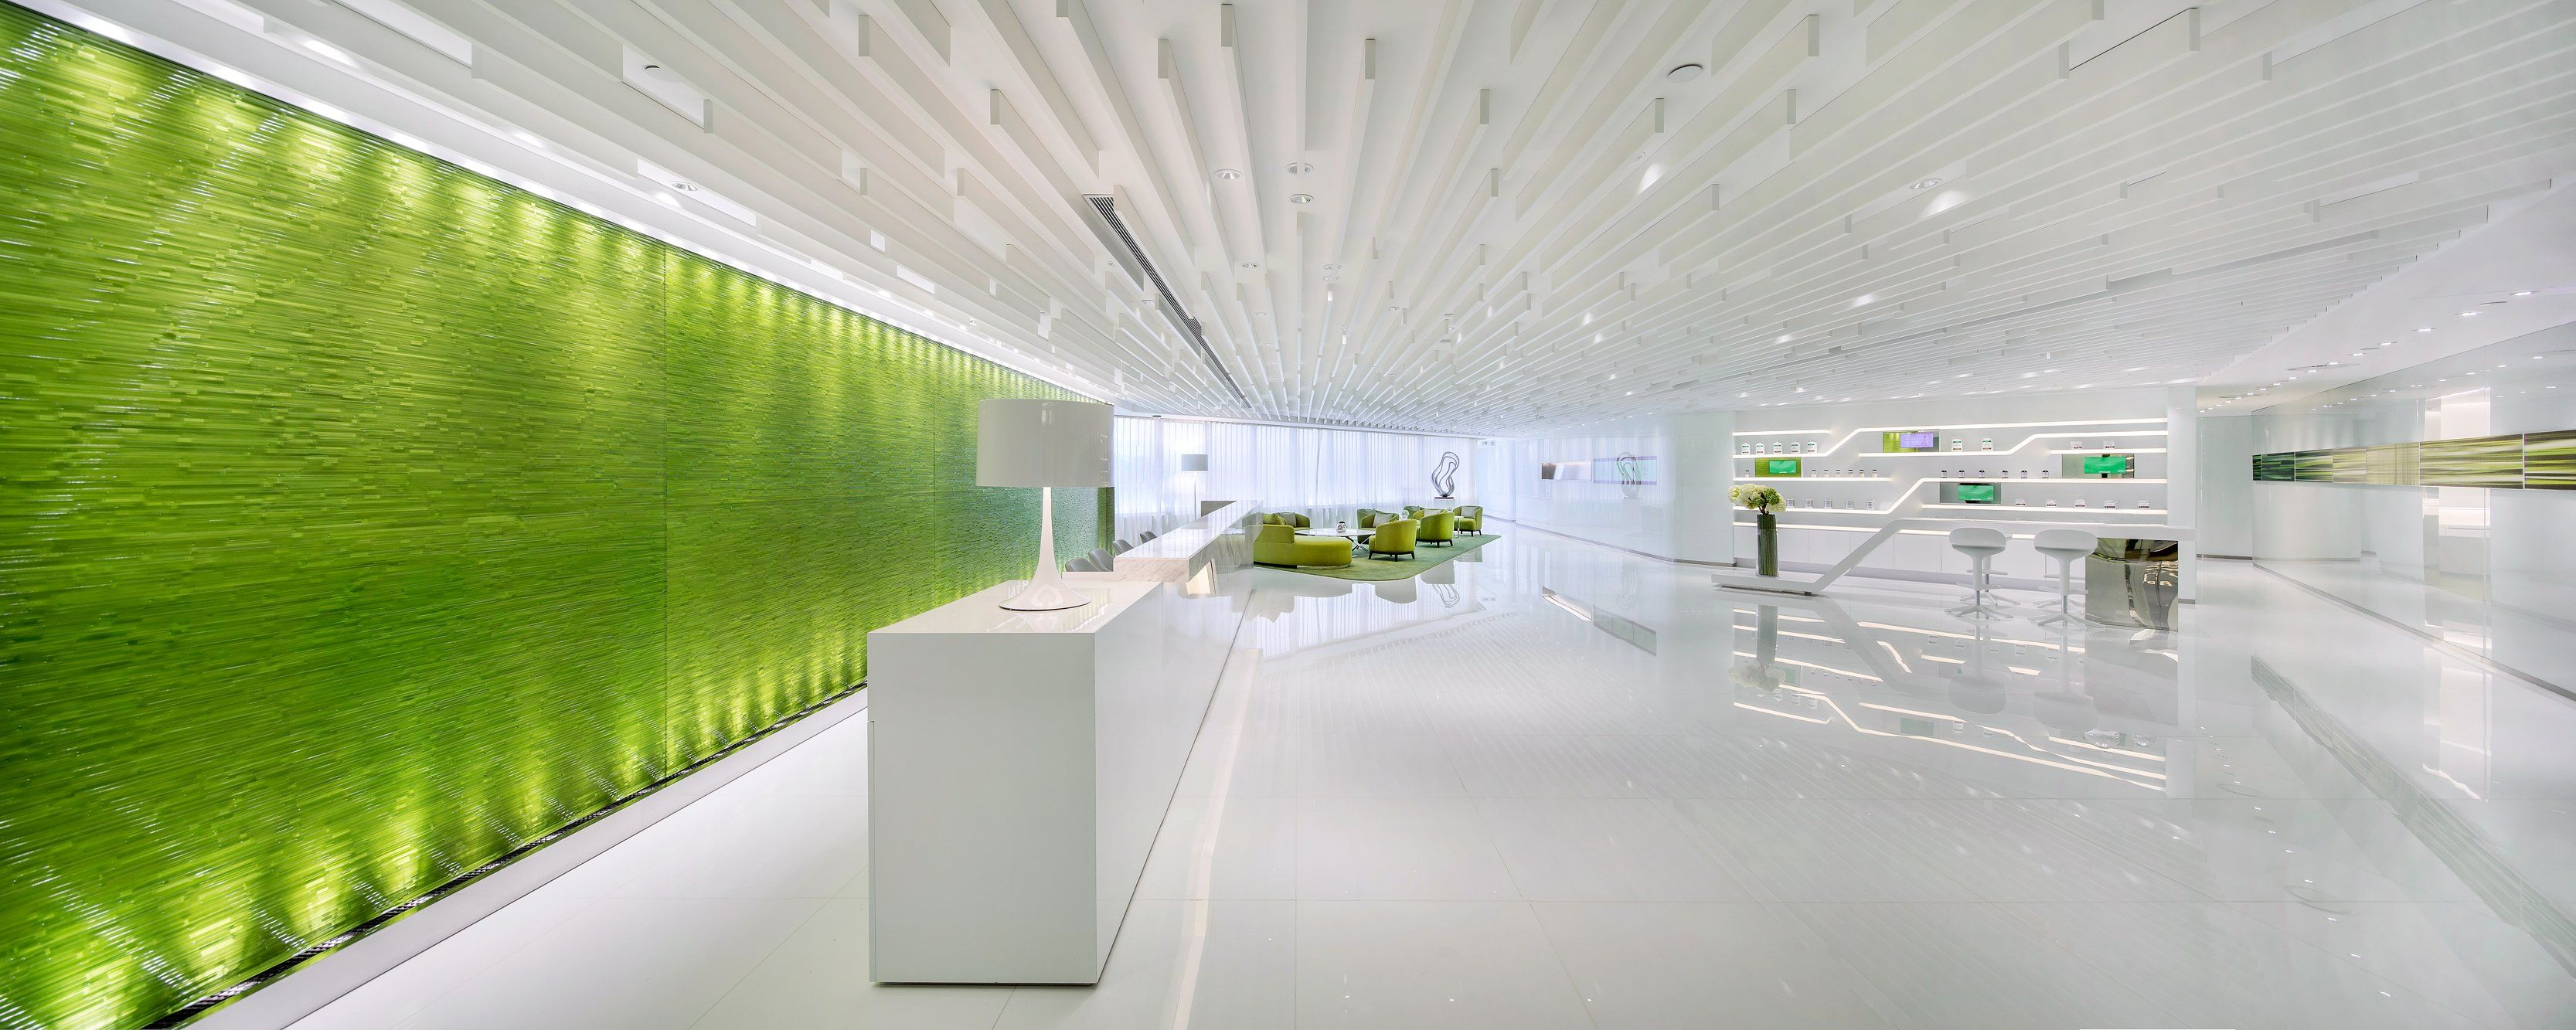 Neo Derm Medical Aesthetic Center In Hong Kong Favorite Places Spaces Pinterest